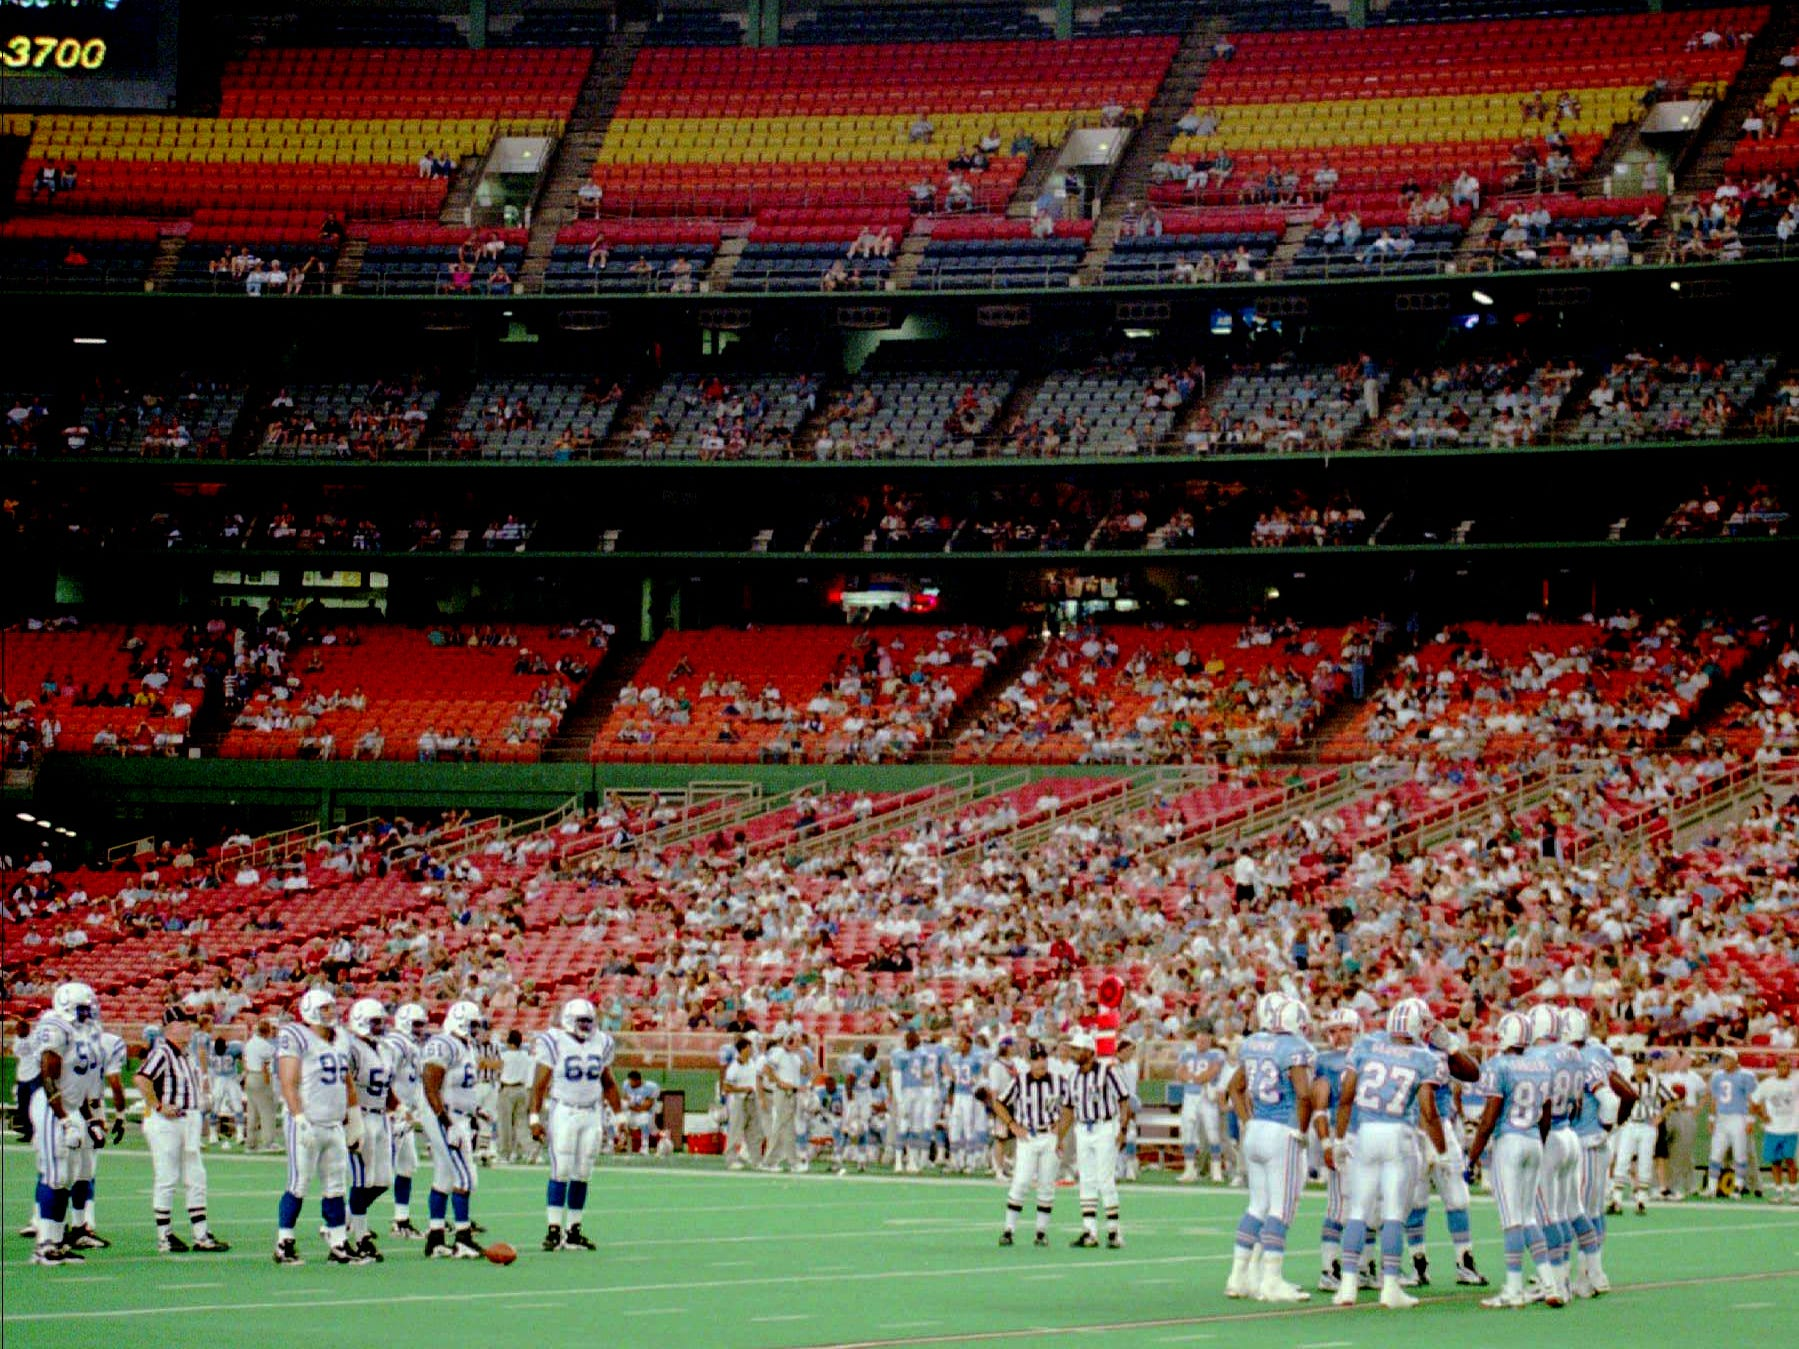 During a time out in the first quarter of the Houston Oilers exhibition game against the Indianapolis Colts Aug. 10, 1996, the Astrodome shows a lack of crowd, as the game brought out an estimated 15,000 fans. The lame-duck Oilers are scheduled to move to Nashville in 1997.